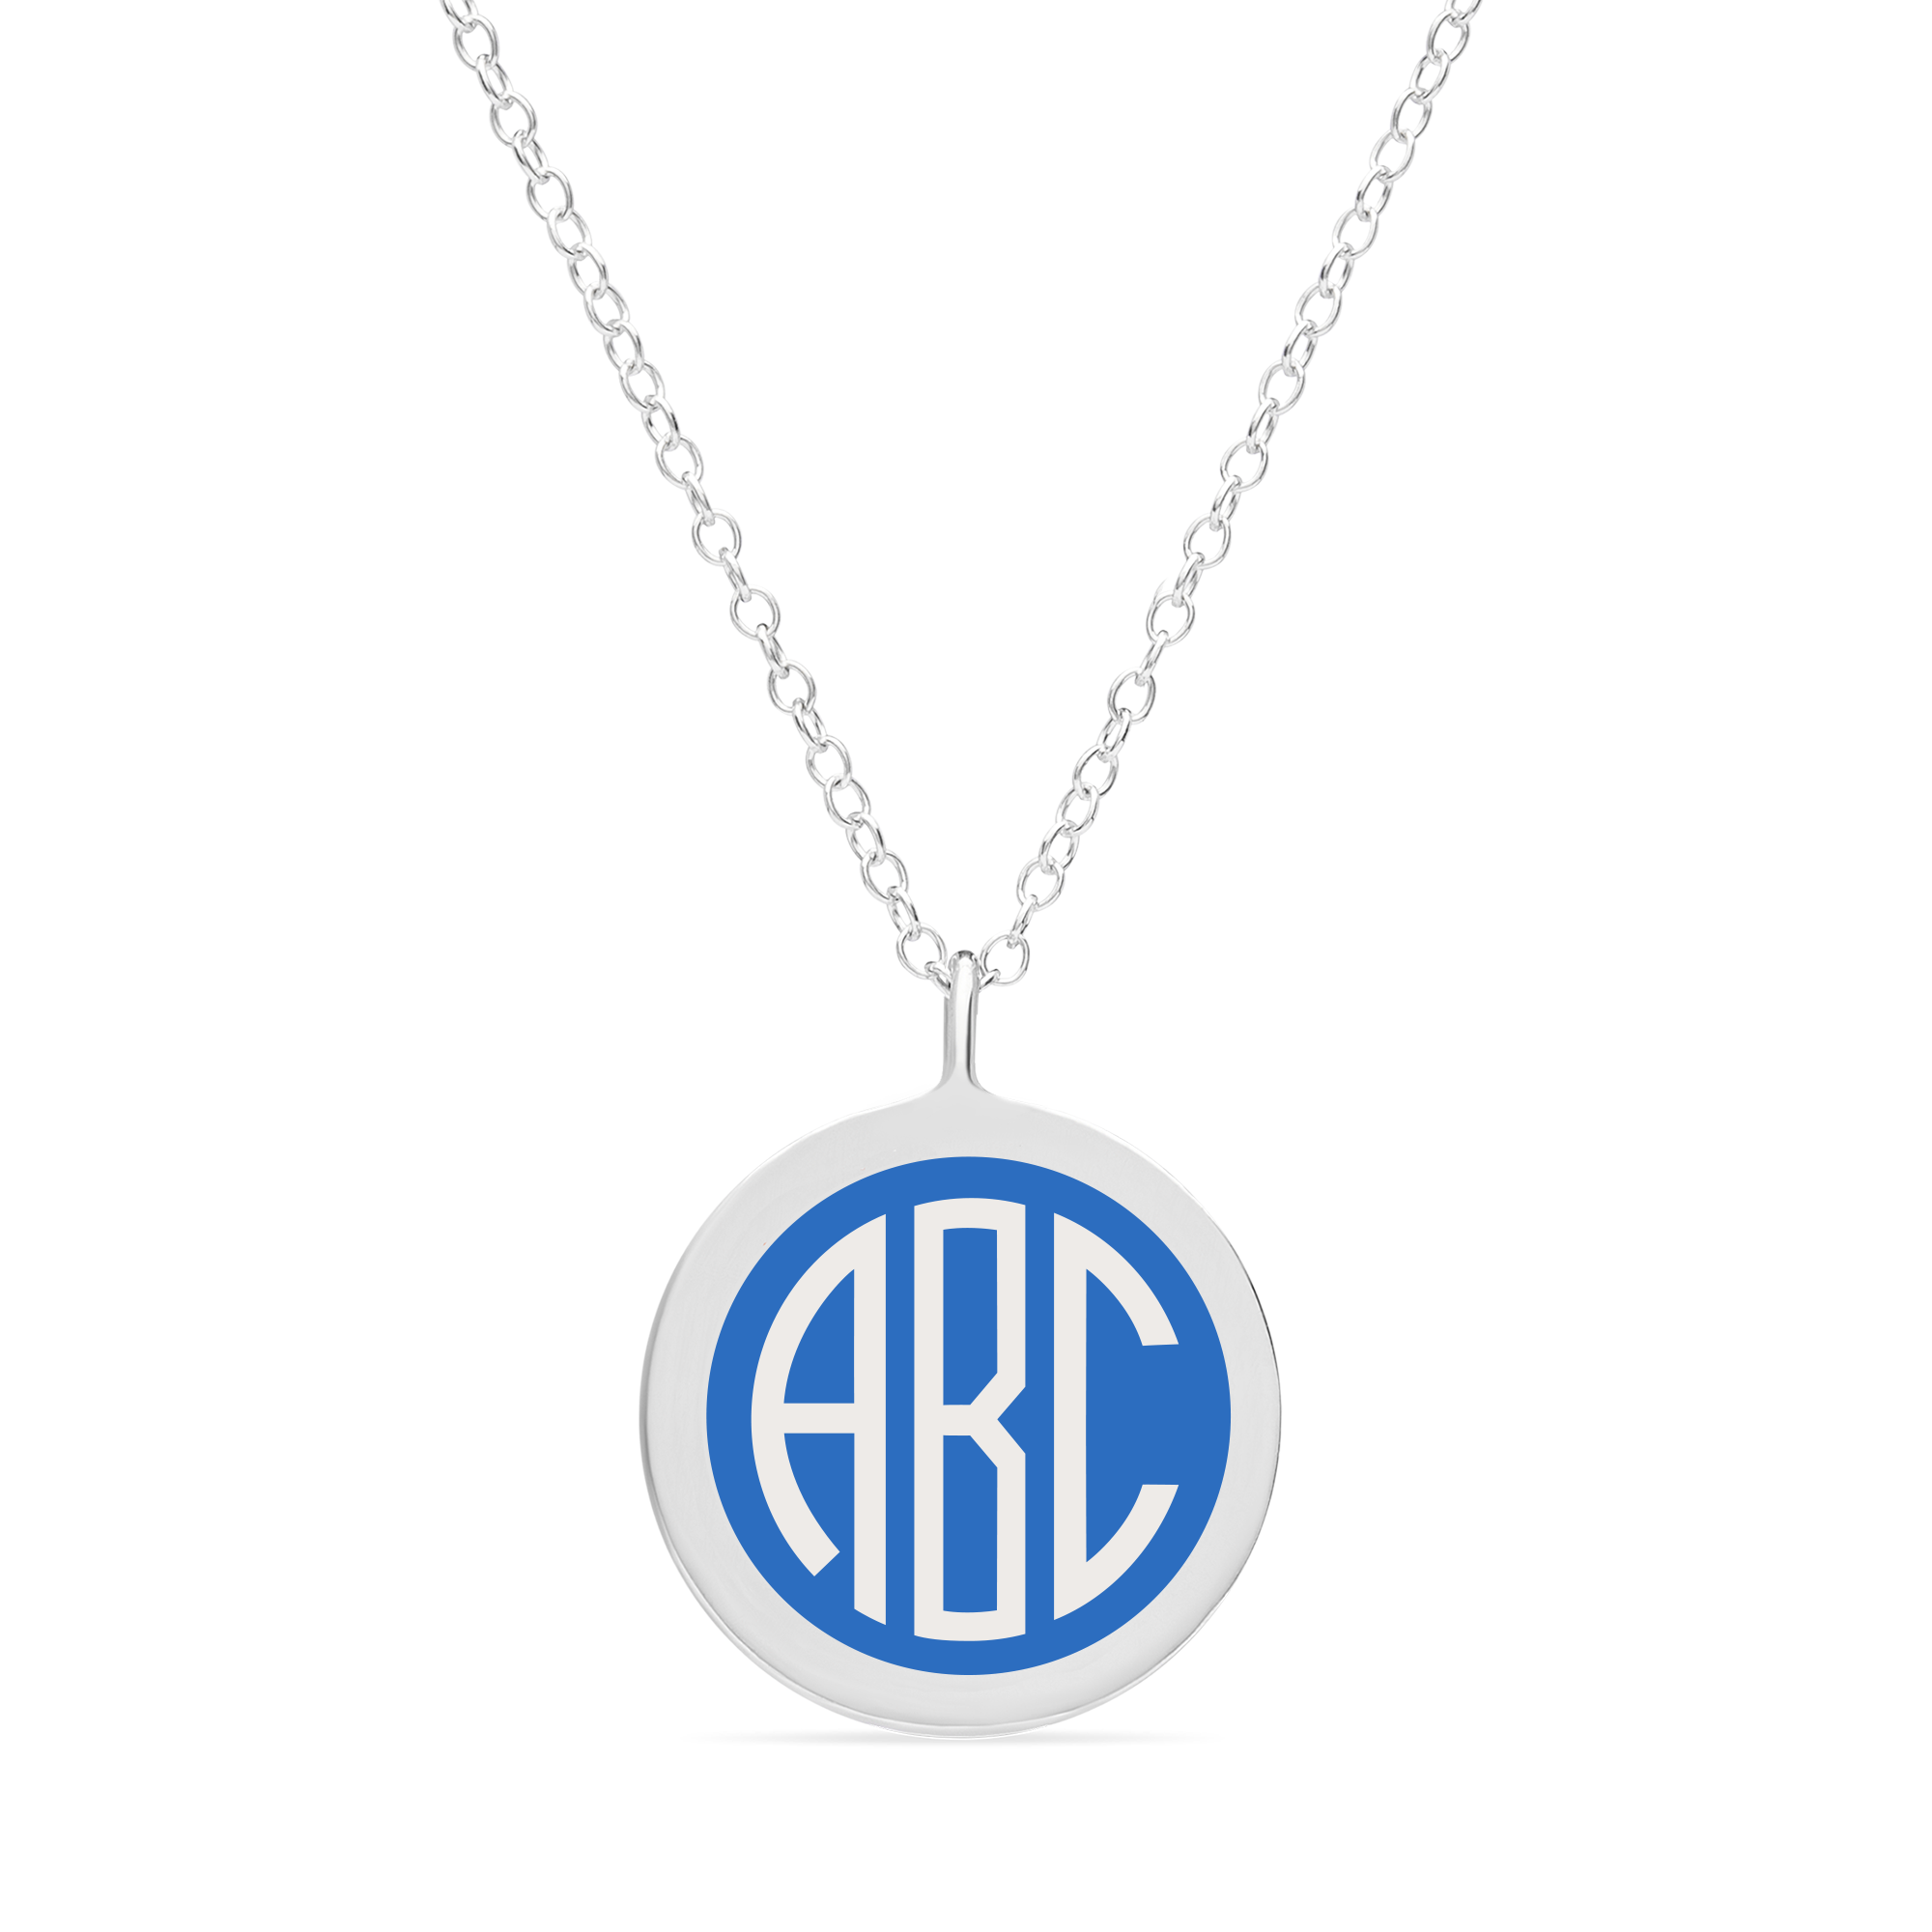 BESPOKE ORIGINAL MONOGRAM NECKLACE in sterling silver